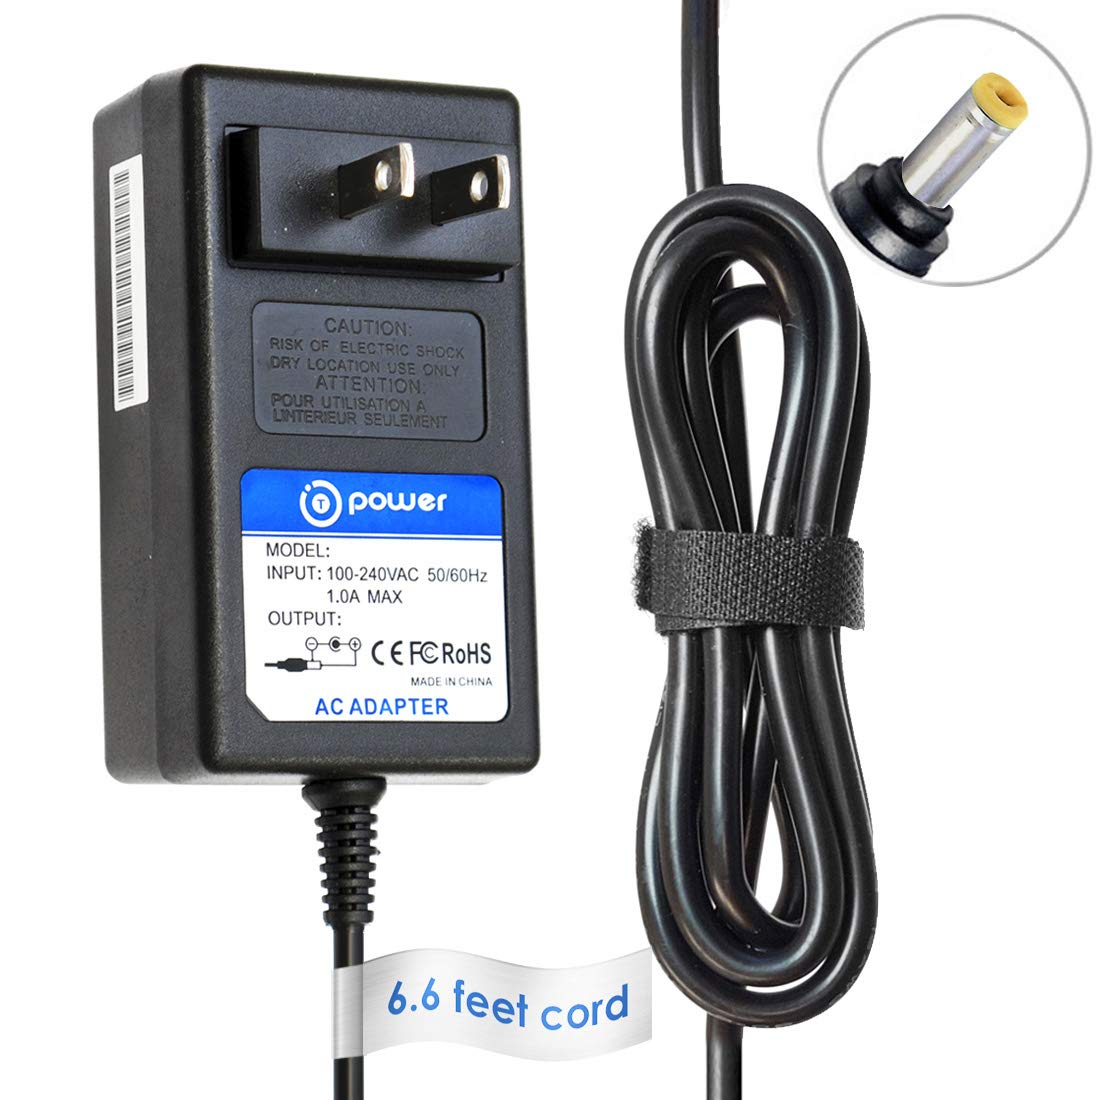 T-Power 12V AC Adapter For Casio WK-1630 ad-12ul WK-3700 PIANO PRIVIA PX-100 PX-110 PX-320 PX-400R PX-500L WK3800 WK-3700 portal Electronic Piano & Keyboard TP-Vb1-F0G